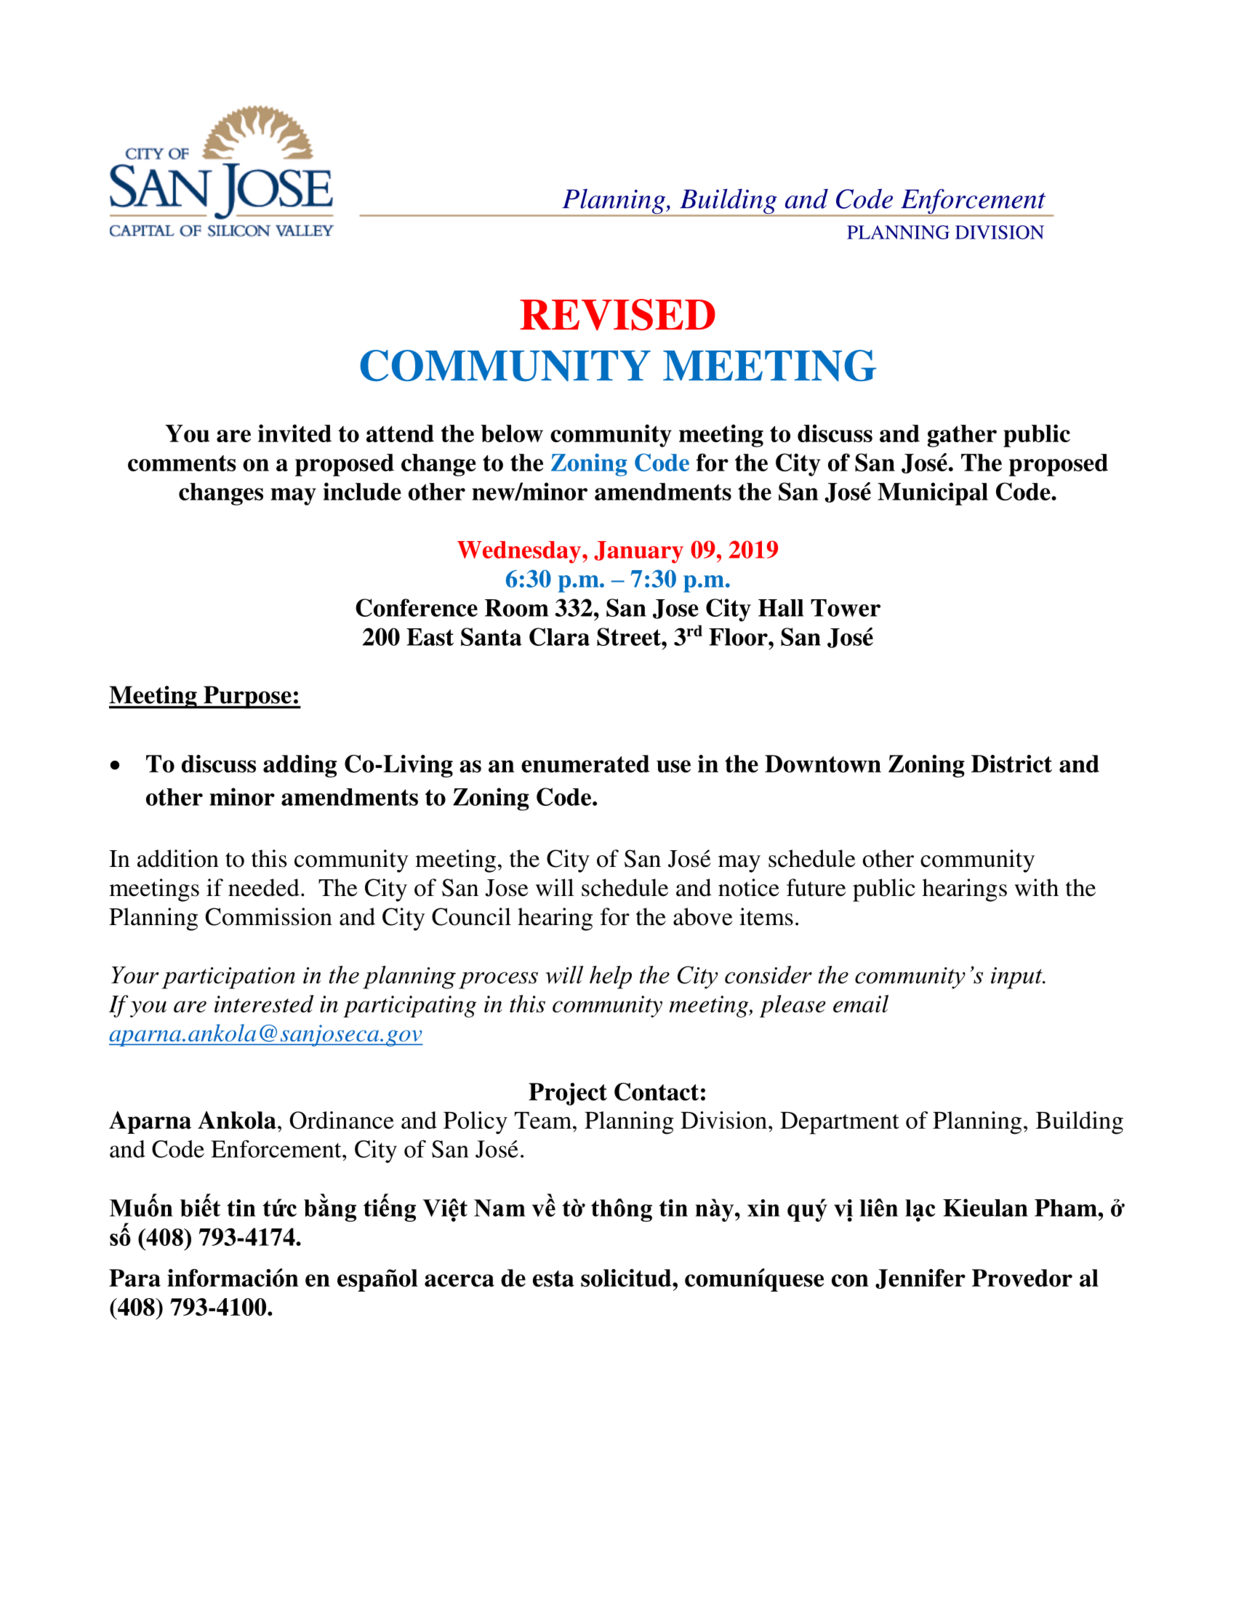 Proposed Zoning Code Change for Co-Living - Community Meeting Notice ...